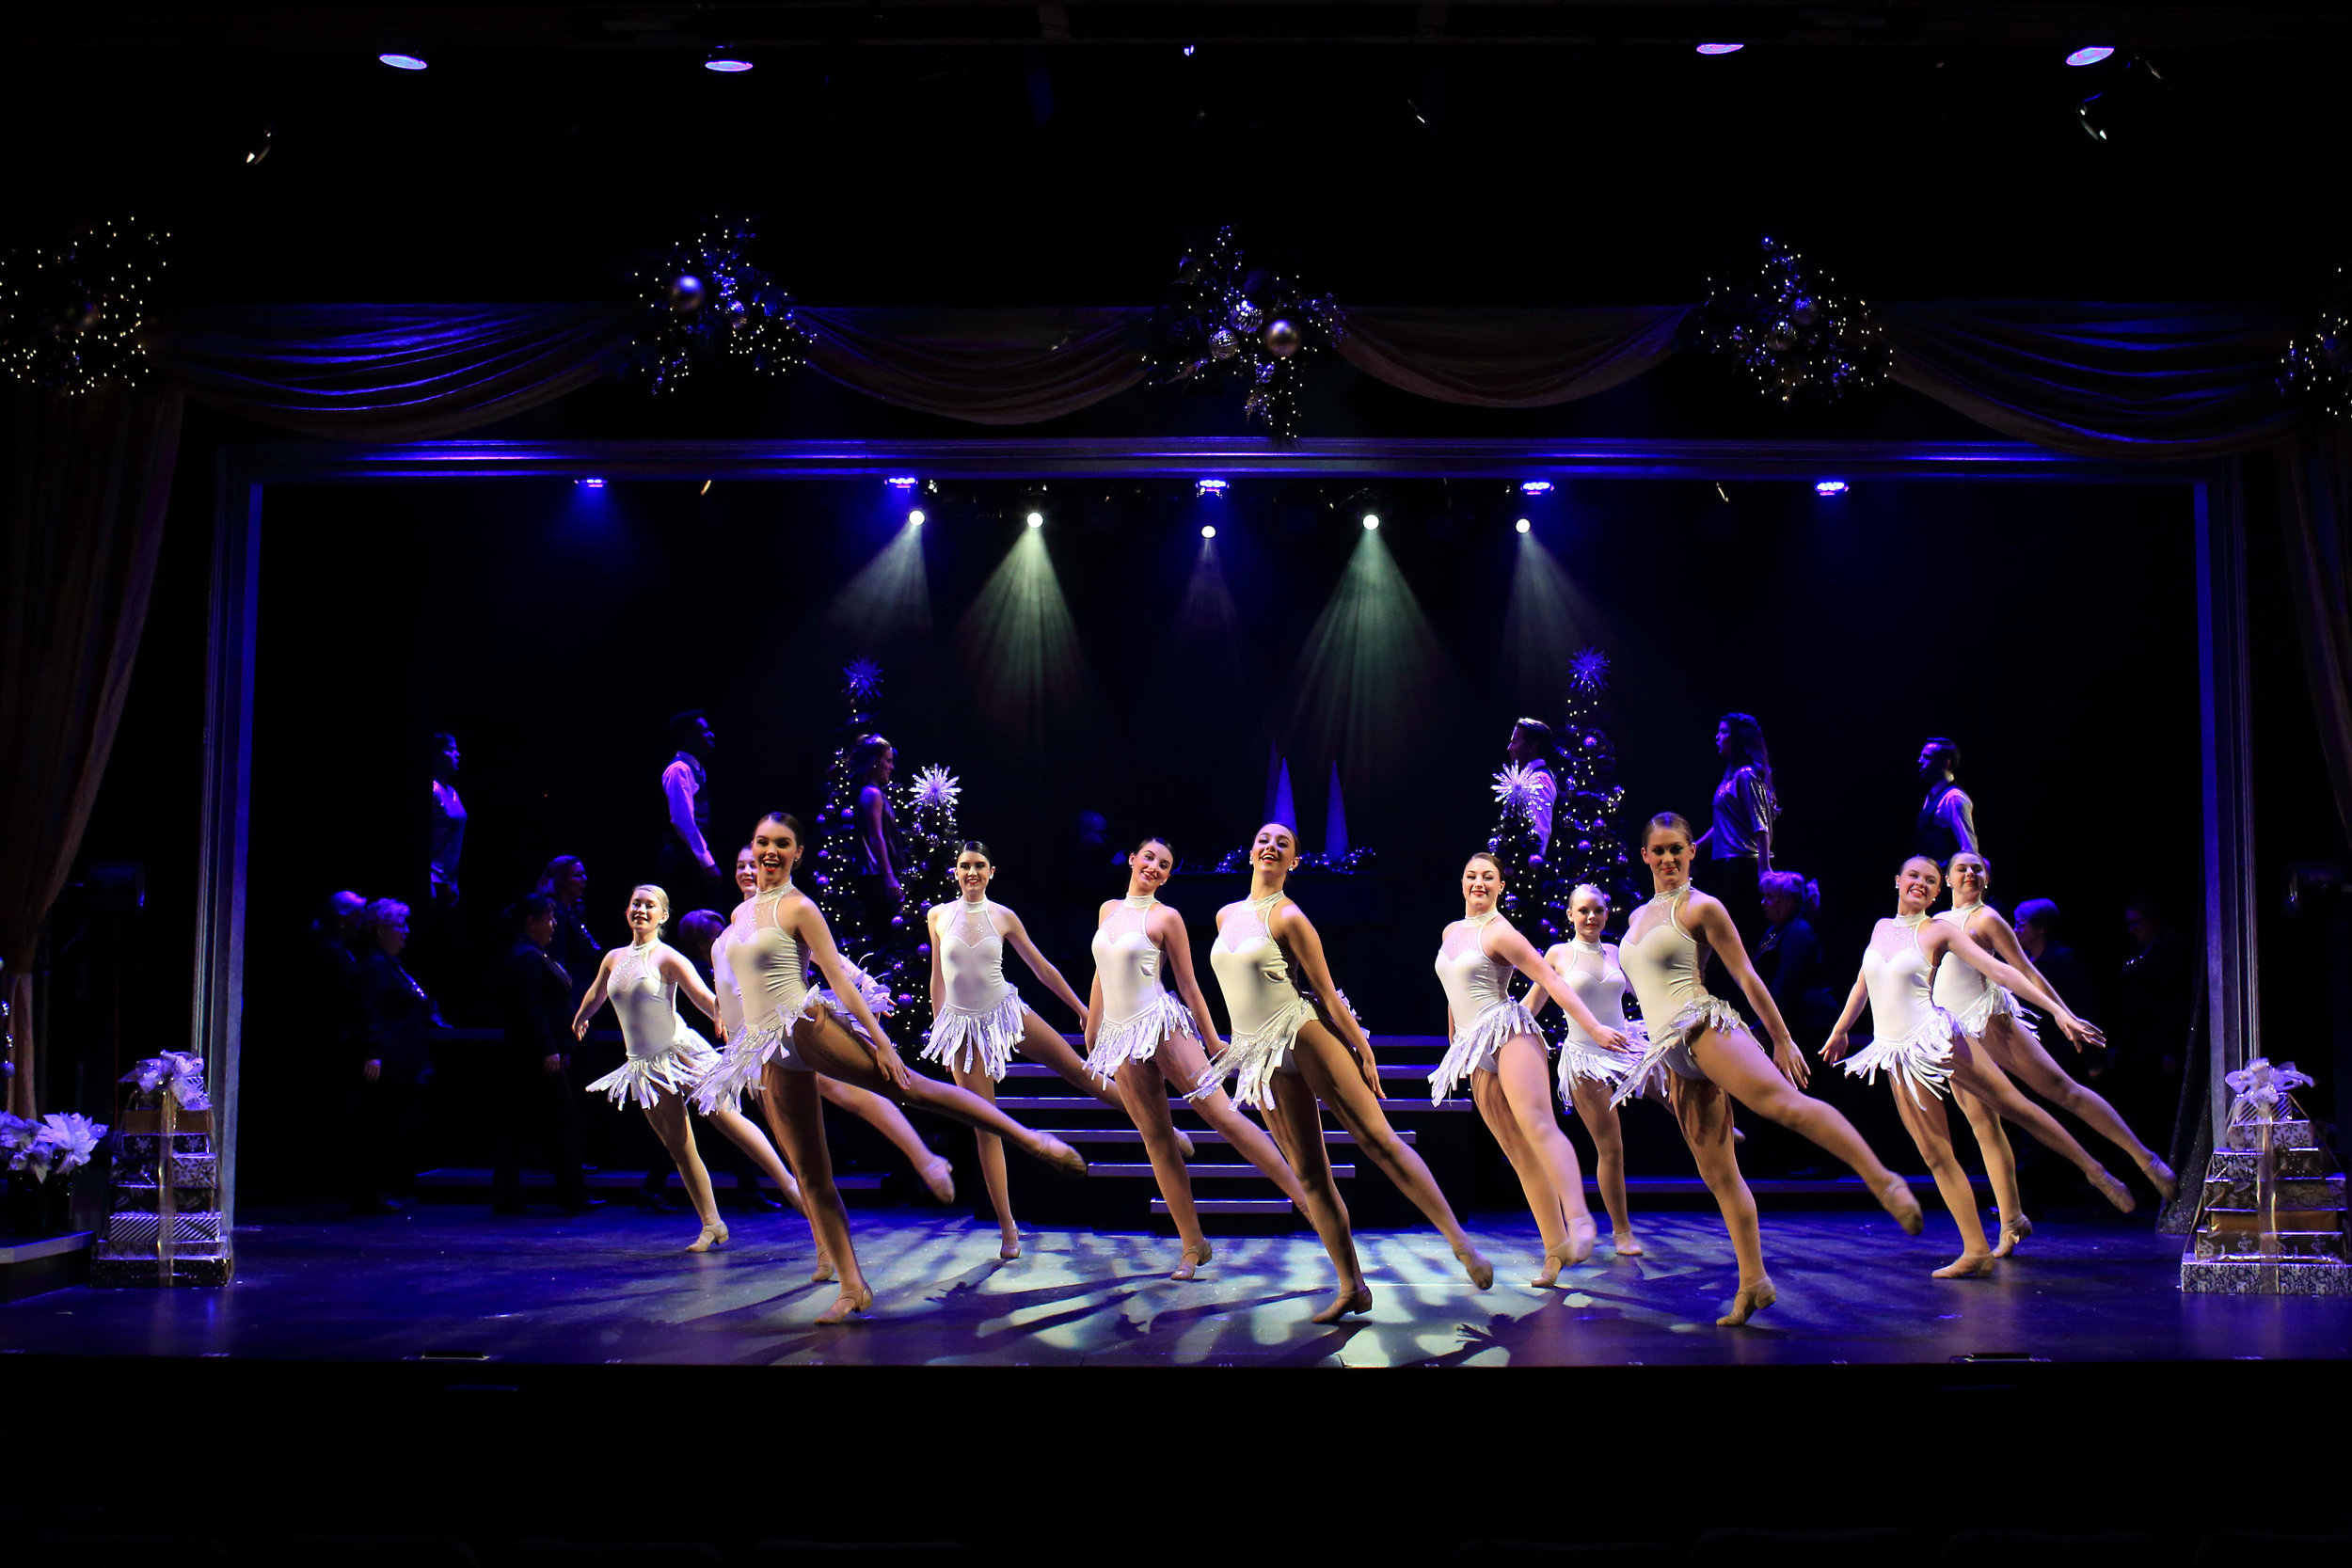 As they were last year, the young women of Pat's School of Dance, in Hendersonville, are a joyous highlight of the show.